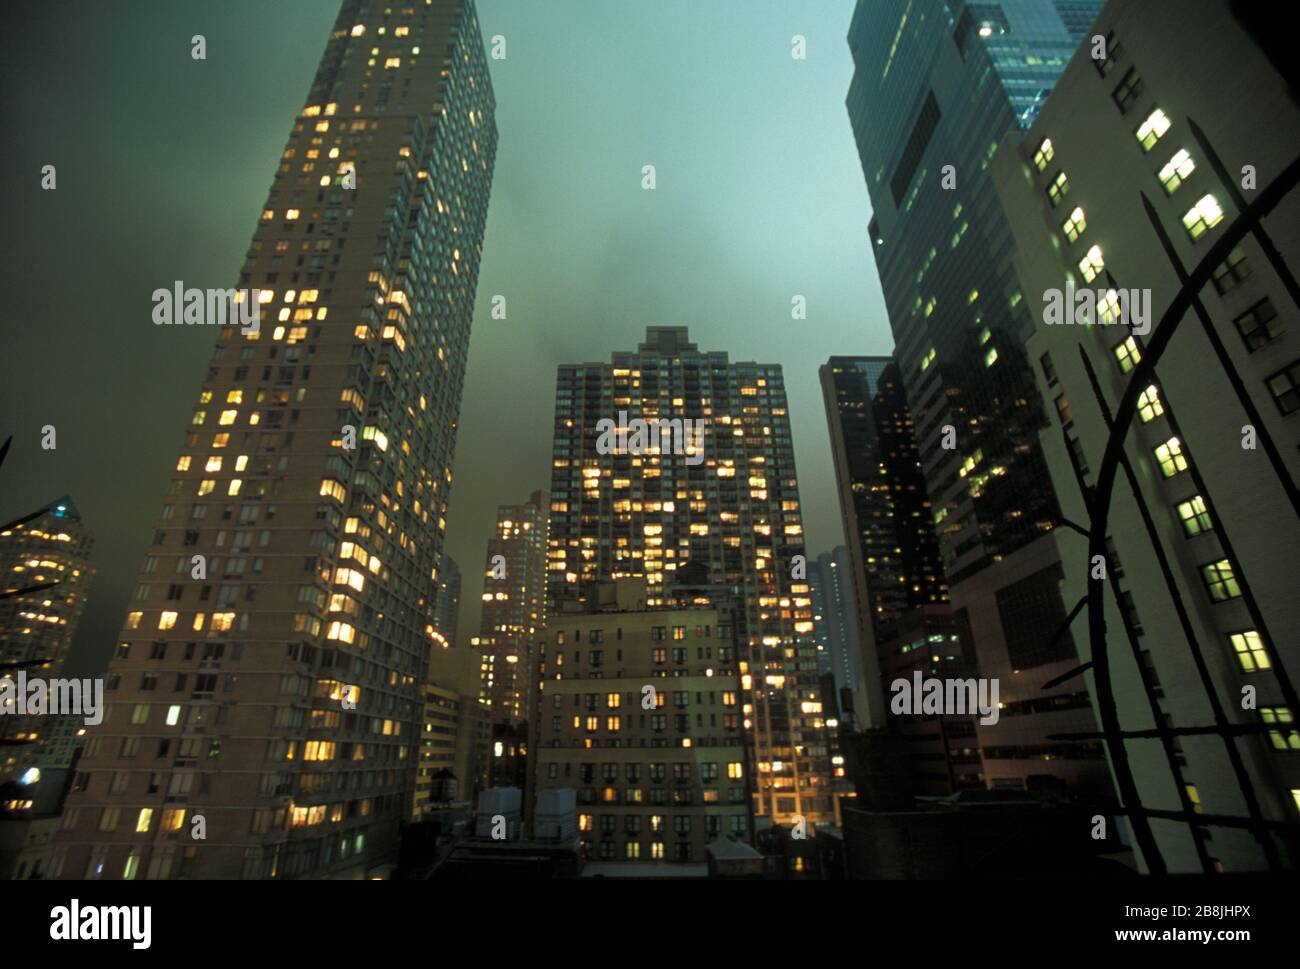 residential-building-in-manhattan-by-night-new-york-usa-2B8JHPX.jpg